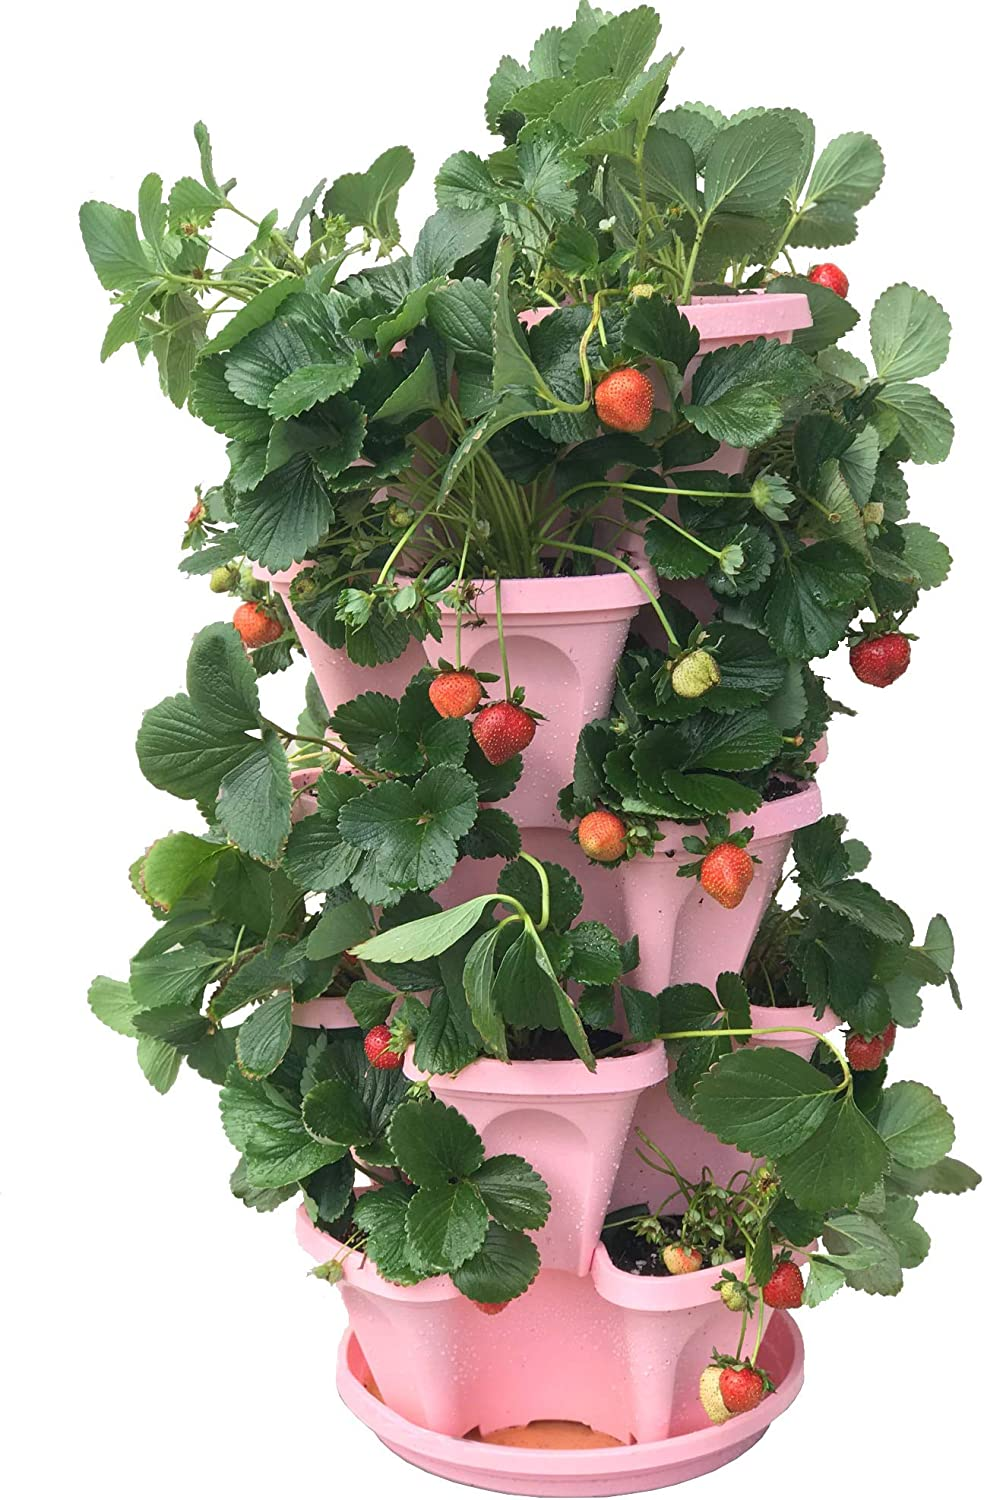 5-Tier Strawberry and Herb Garden Planter – Stackable Gardening Pots with 10 Inch Saucer